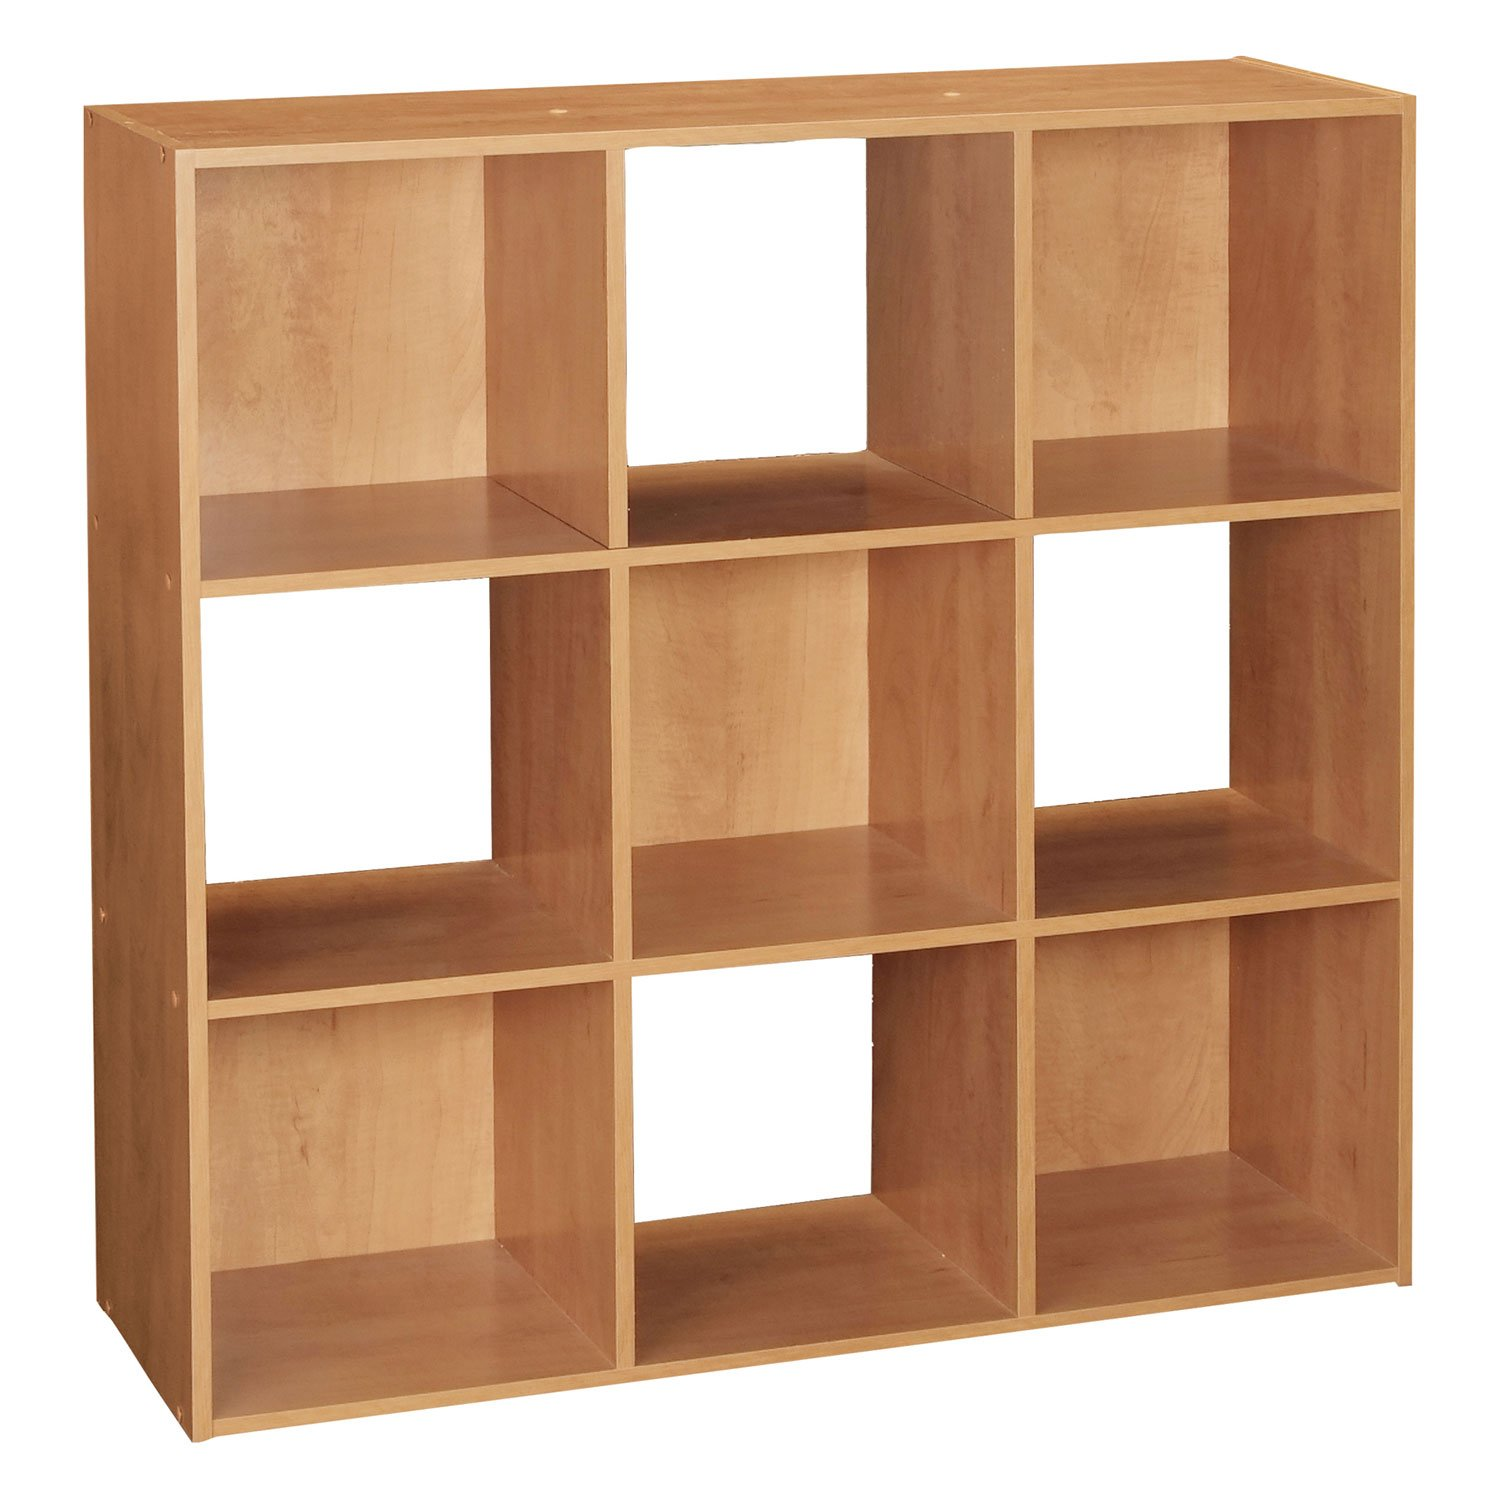 cubes bq at prd h b w q oak form shelf diy effect shelving departments unit mixxit cube